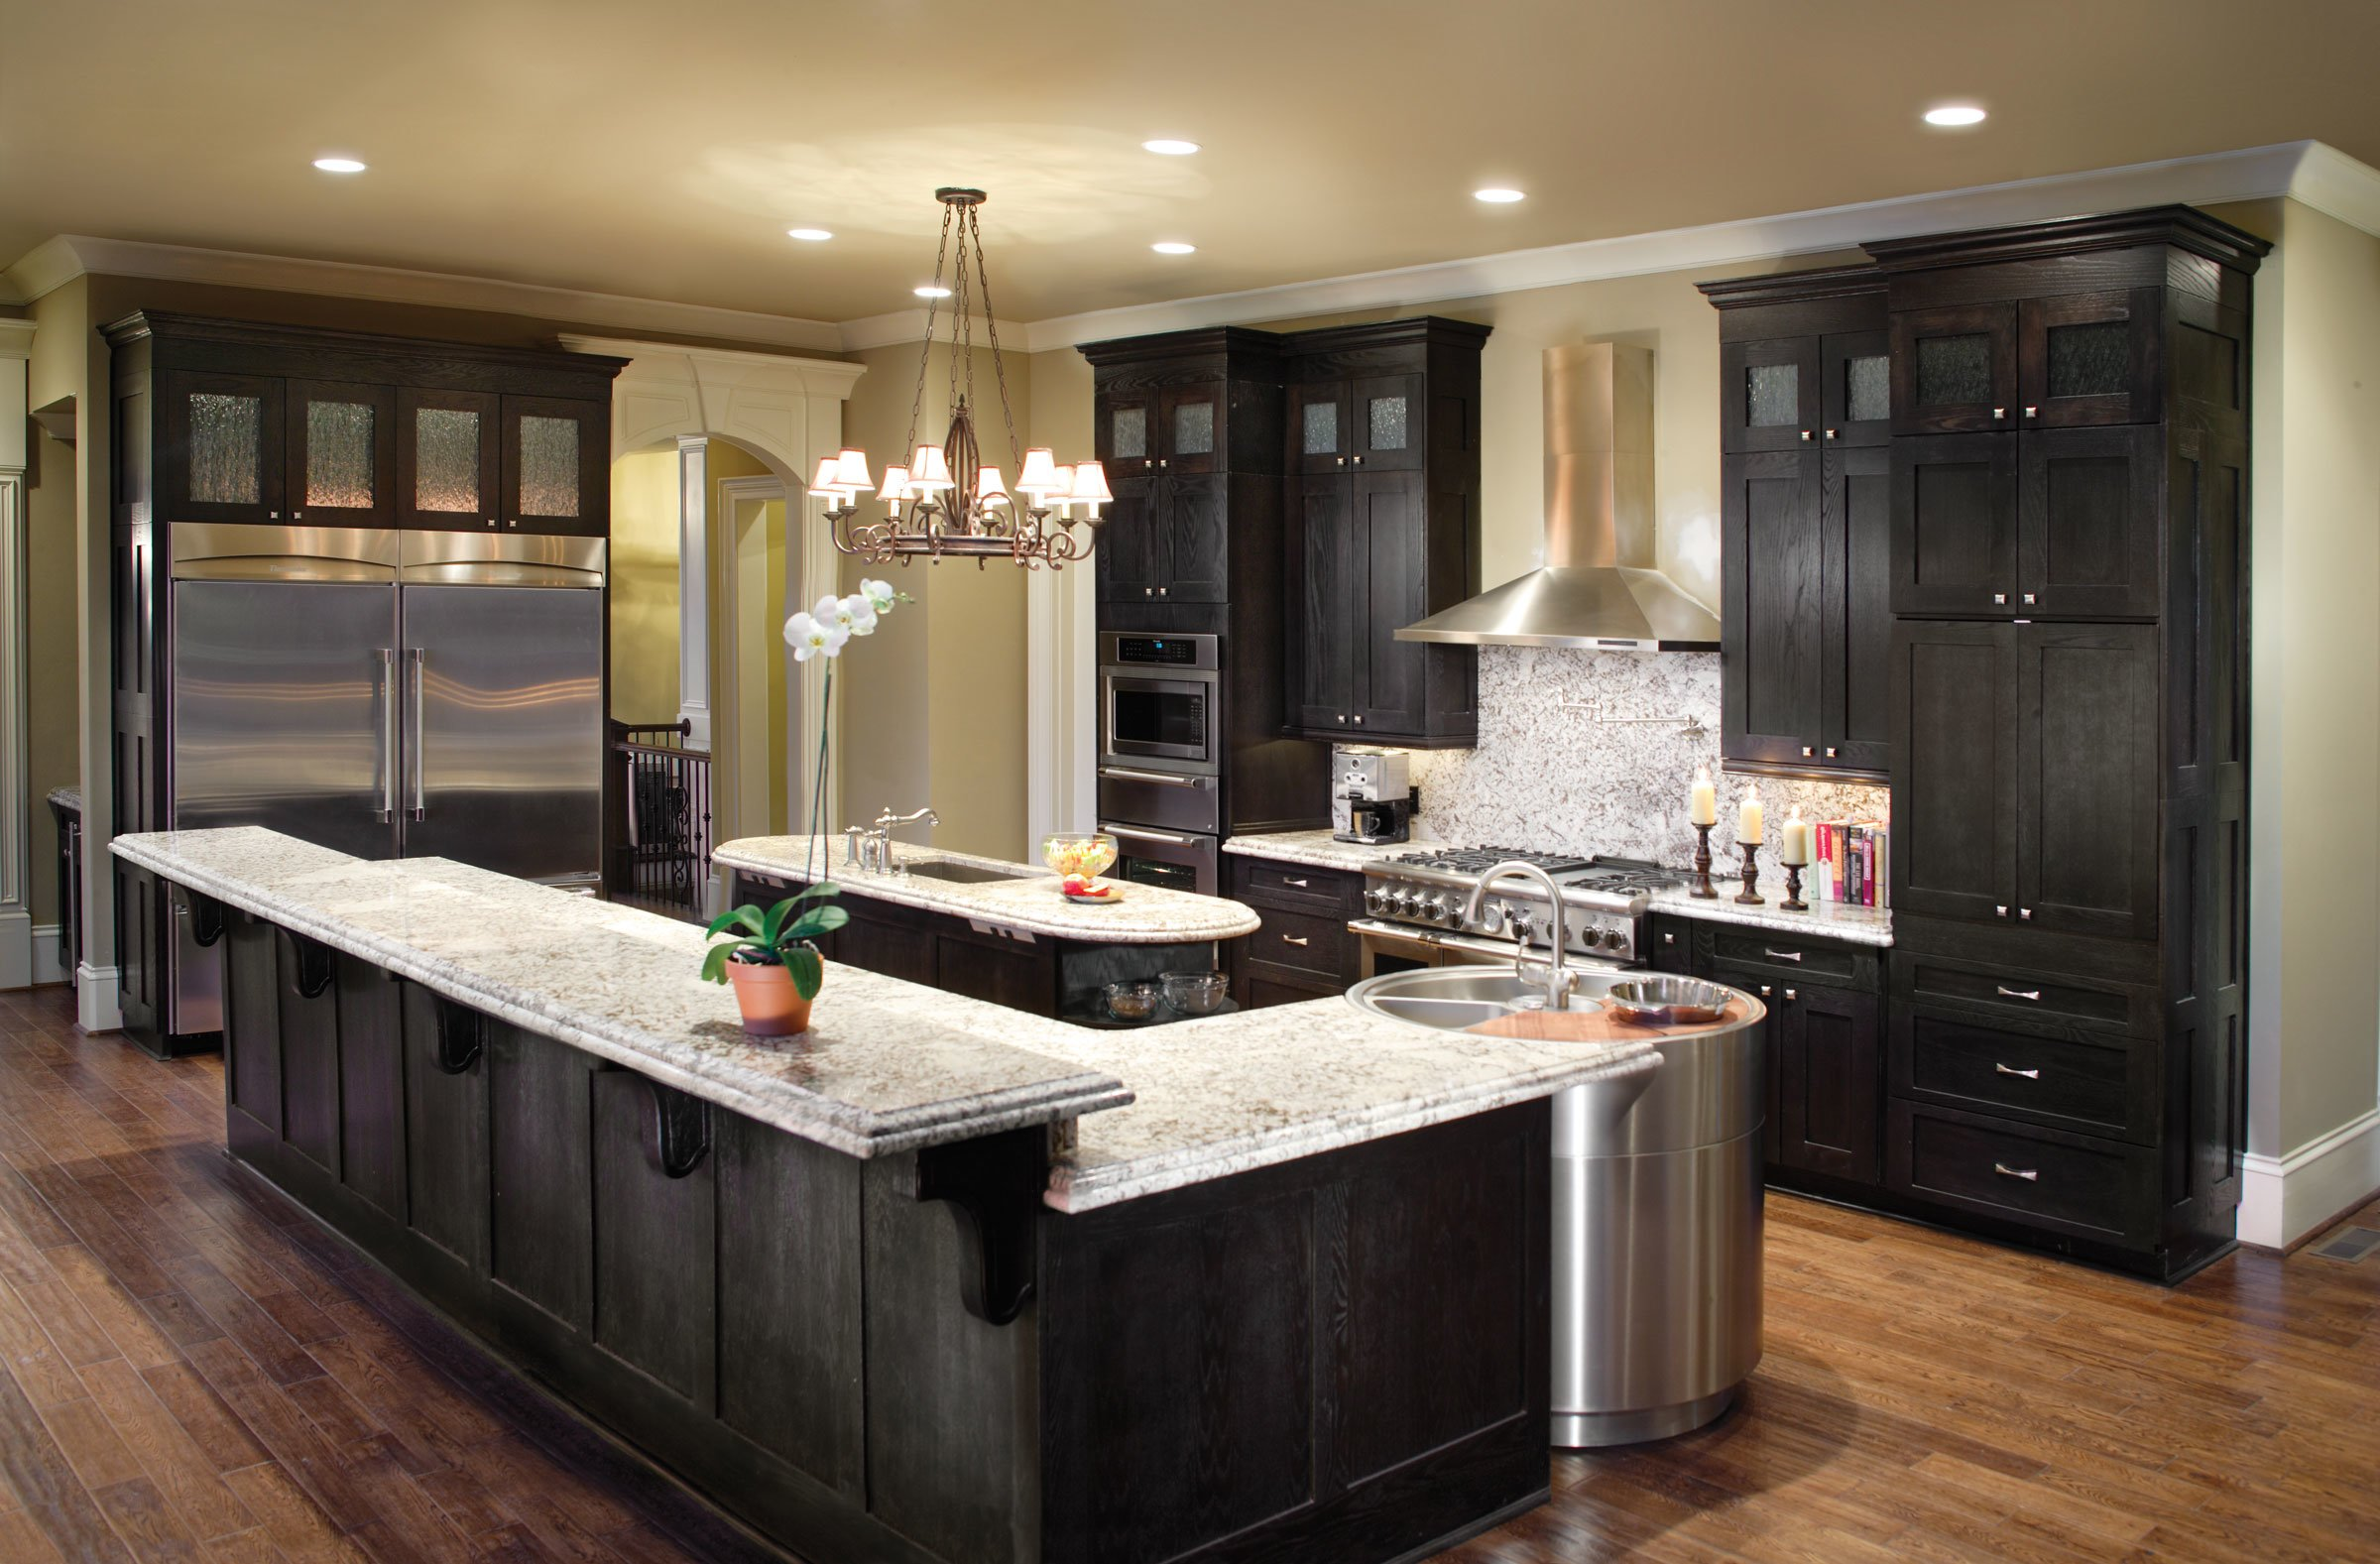 Custom Bathroom Kitchen Cabinets Phoenix Cabinets By Design